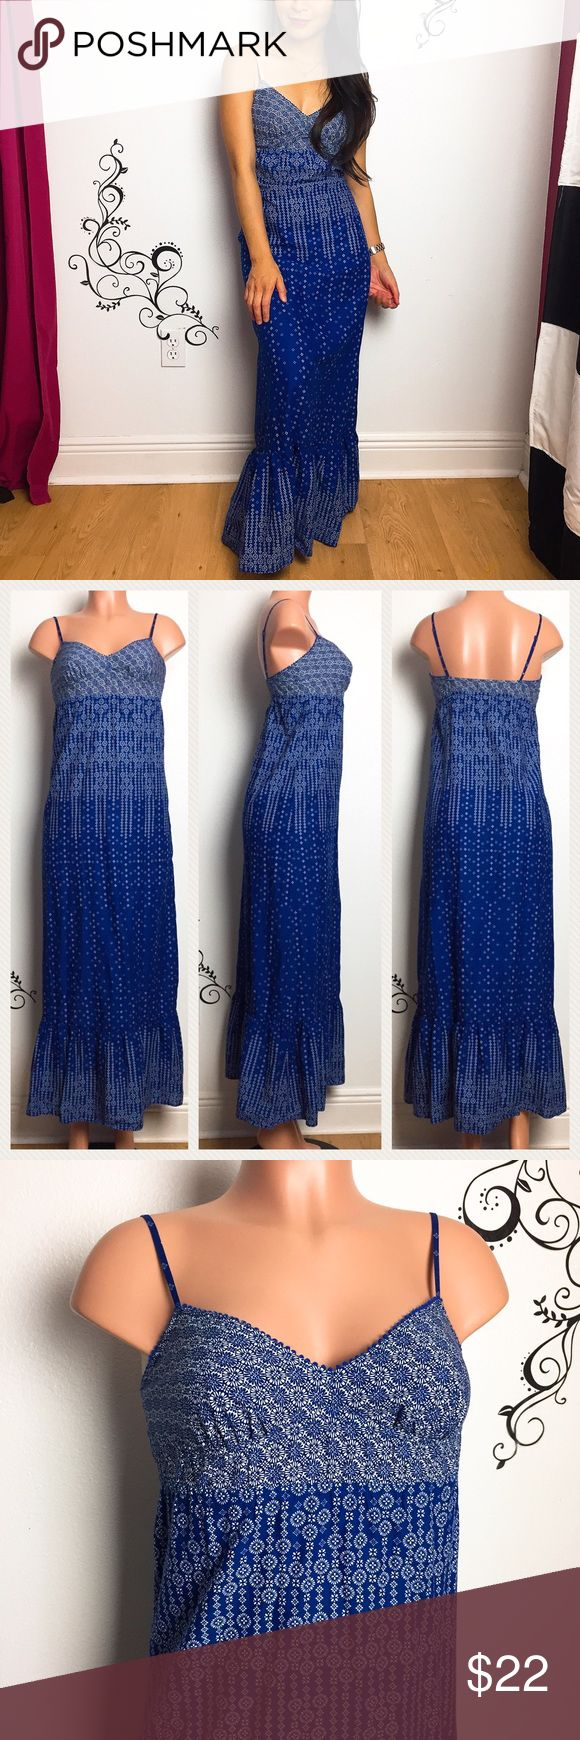 "American Eagle Outfitters • blue maxi dress Pretty blue and white maxi dress from American Eagle Outfitters.  Adjustable straps, stretchy empire waist. Cute spring and summer dress!   Condition: like new, no flaws found, great condition overall, not faded Size: 0 or XXS Chest: 13-16 inches  Length: 46"" pit to hem Fabric: cotton  🚫trade American Eagle Outfitters Dresses Maxi"